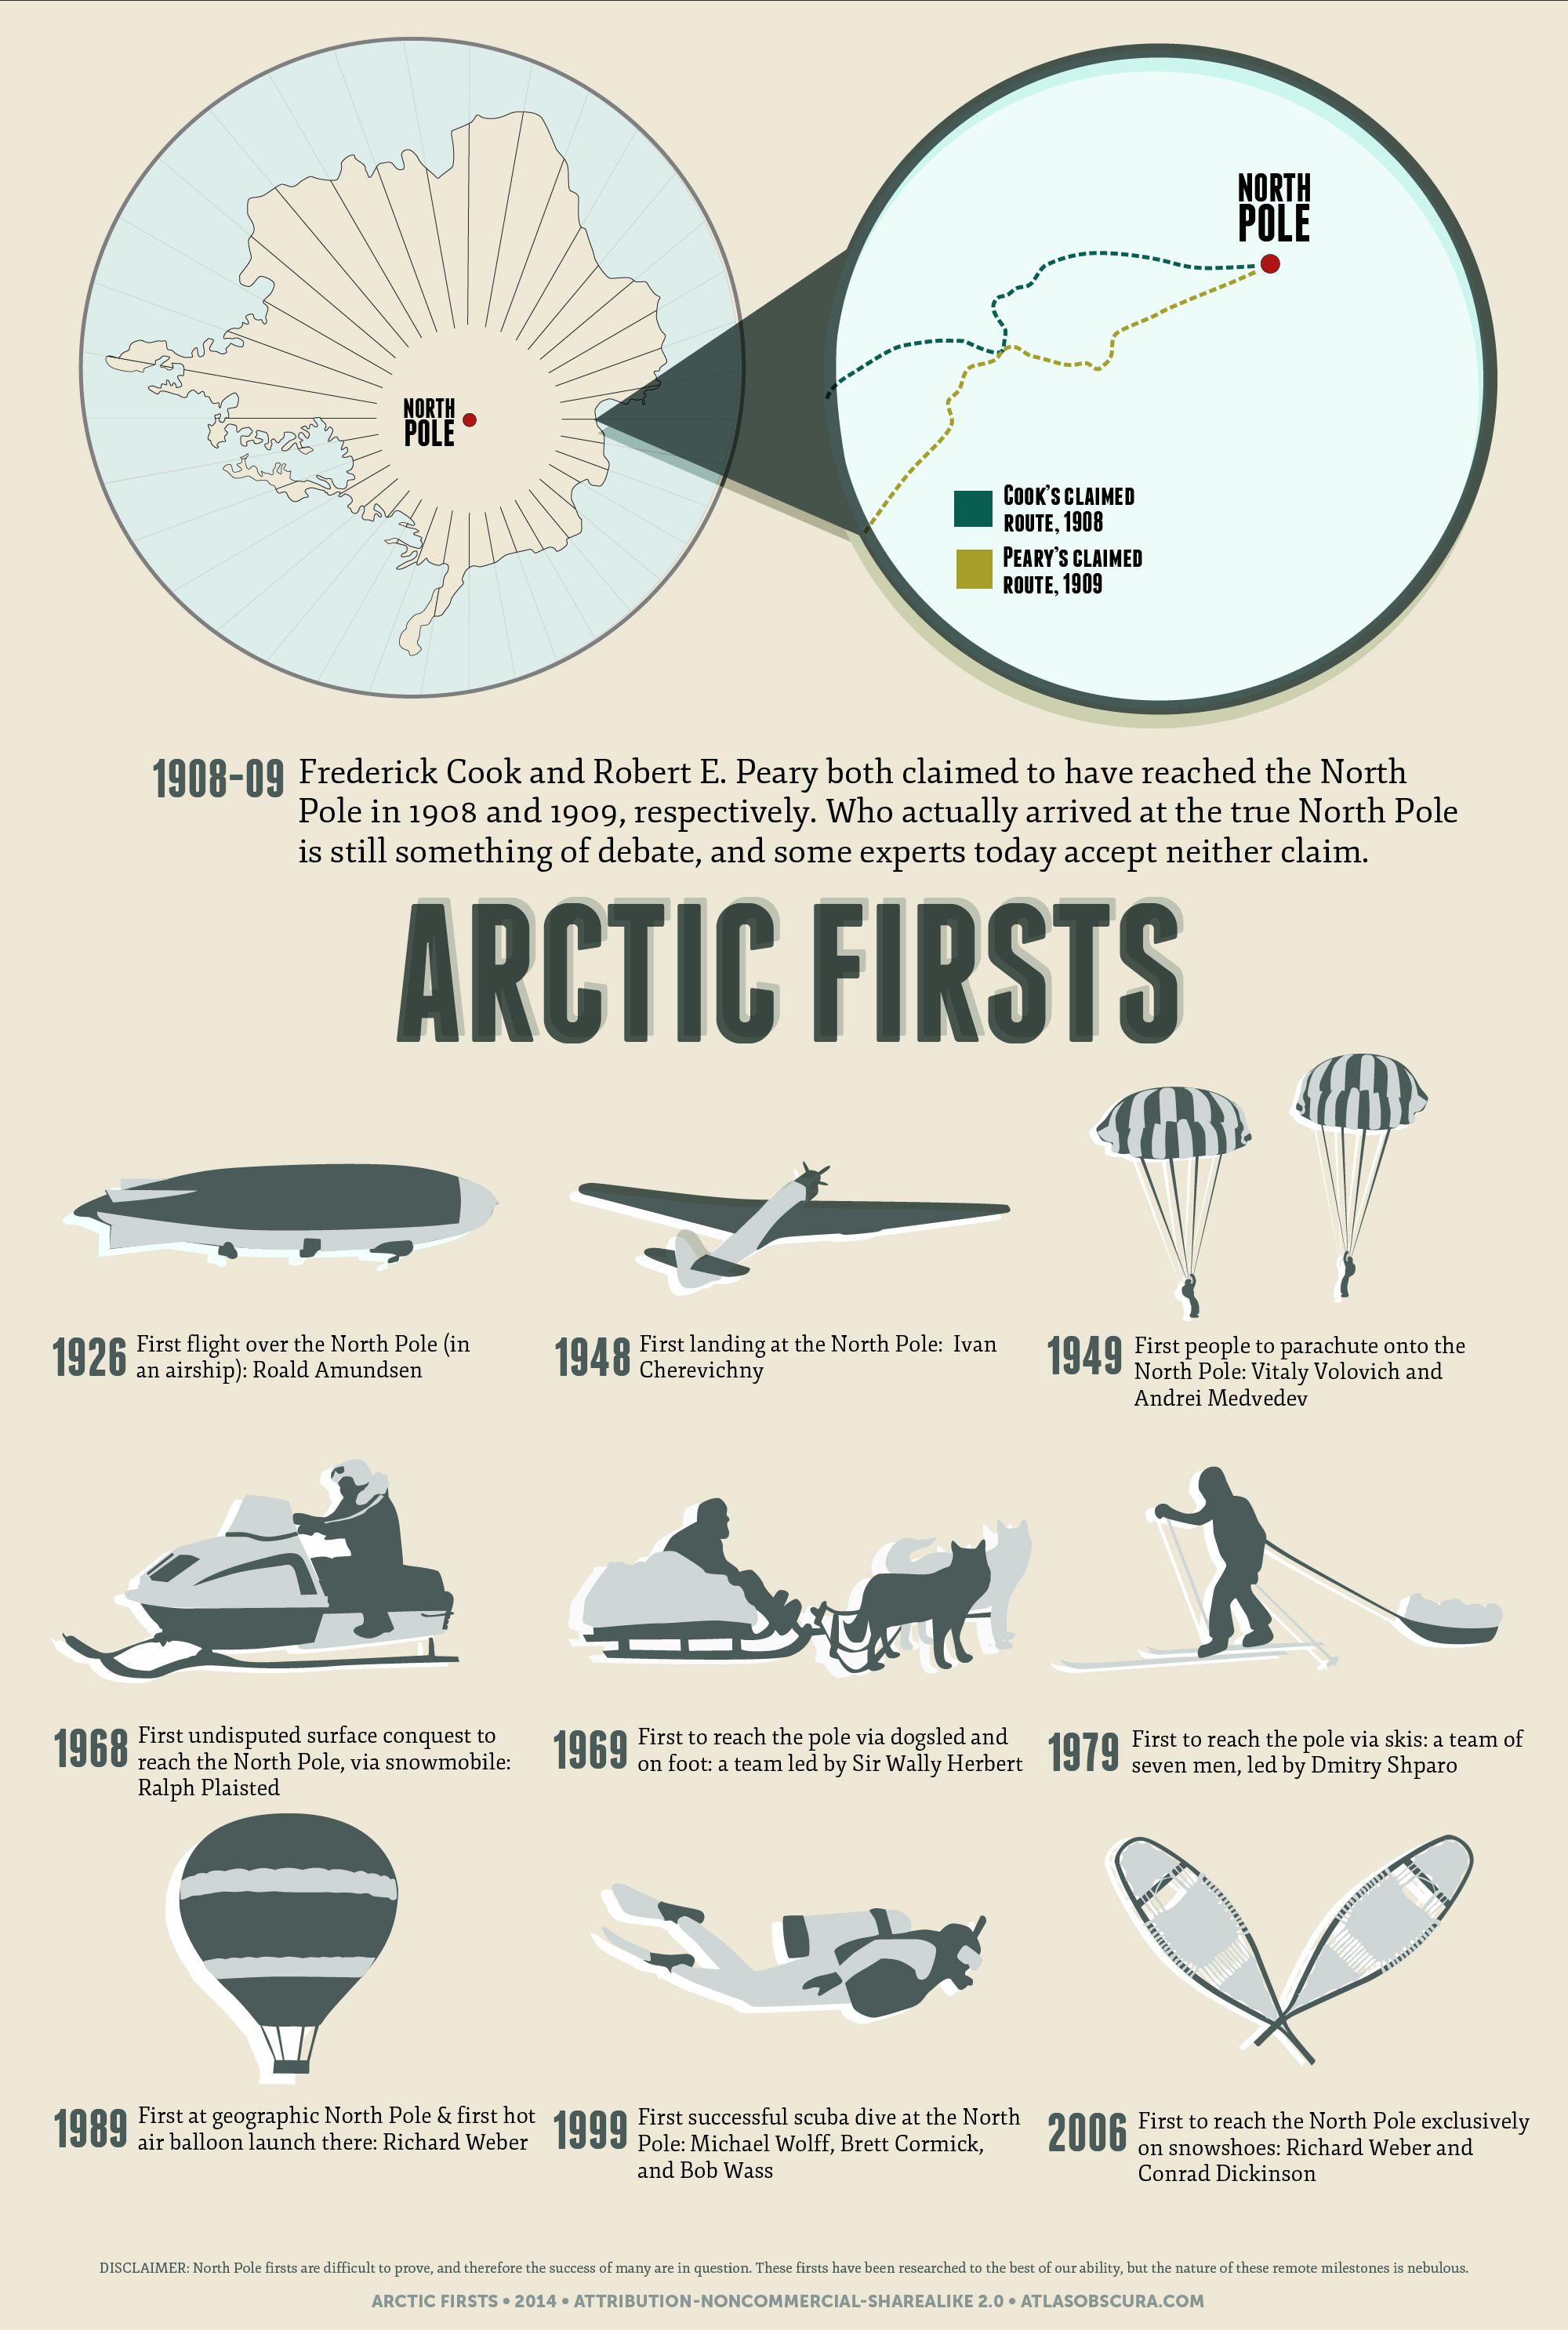 Arctic Firsts